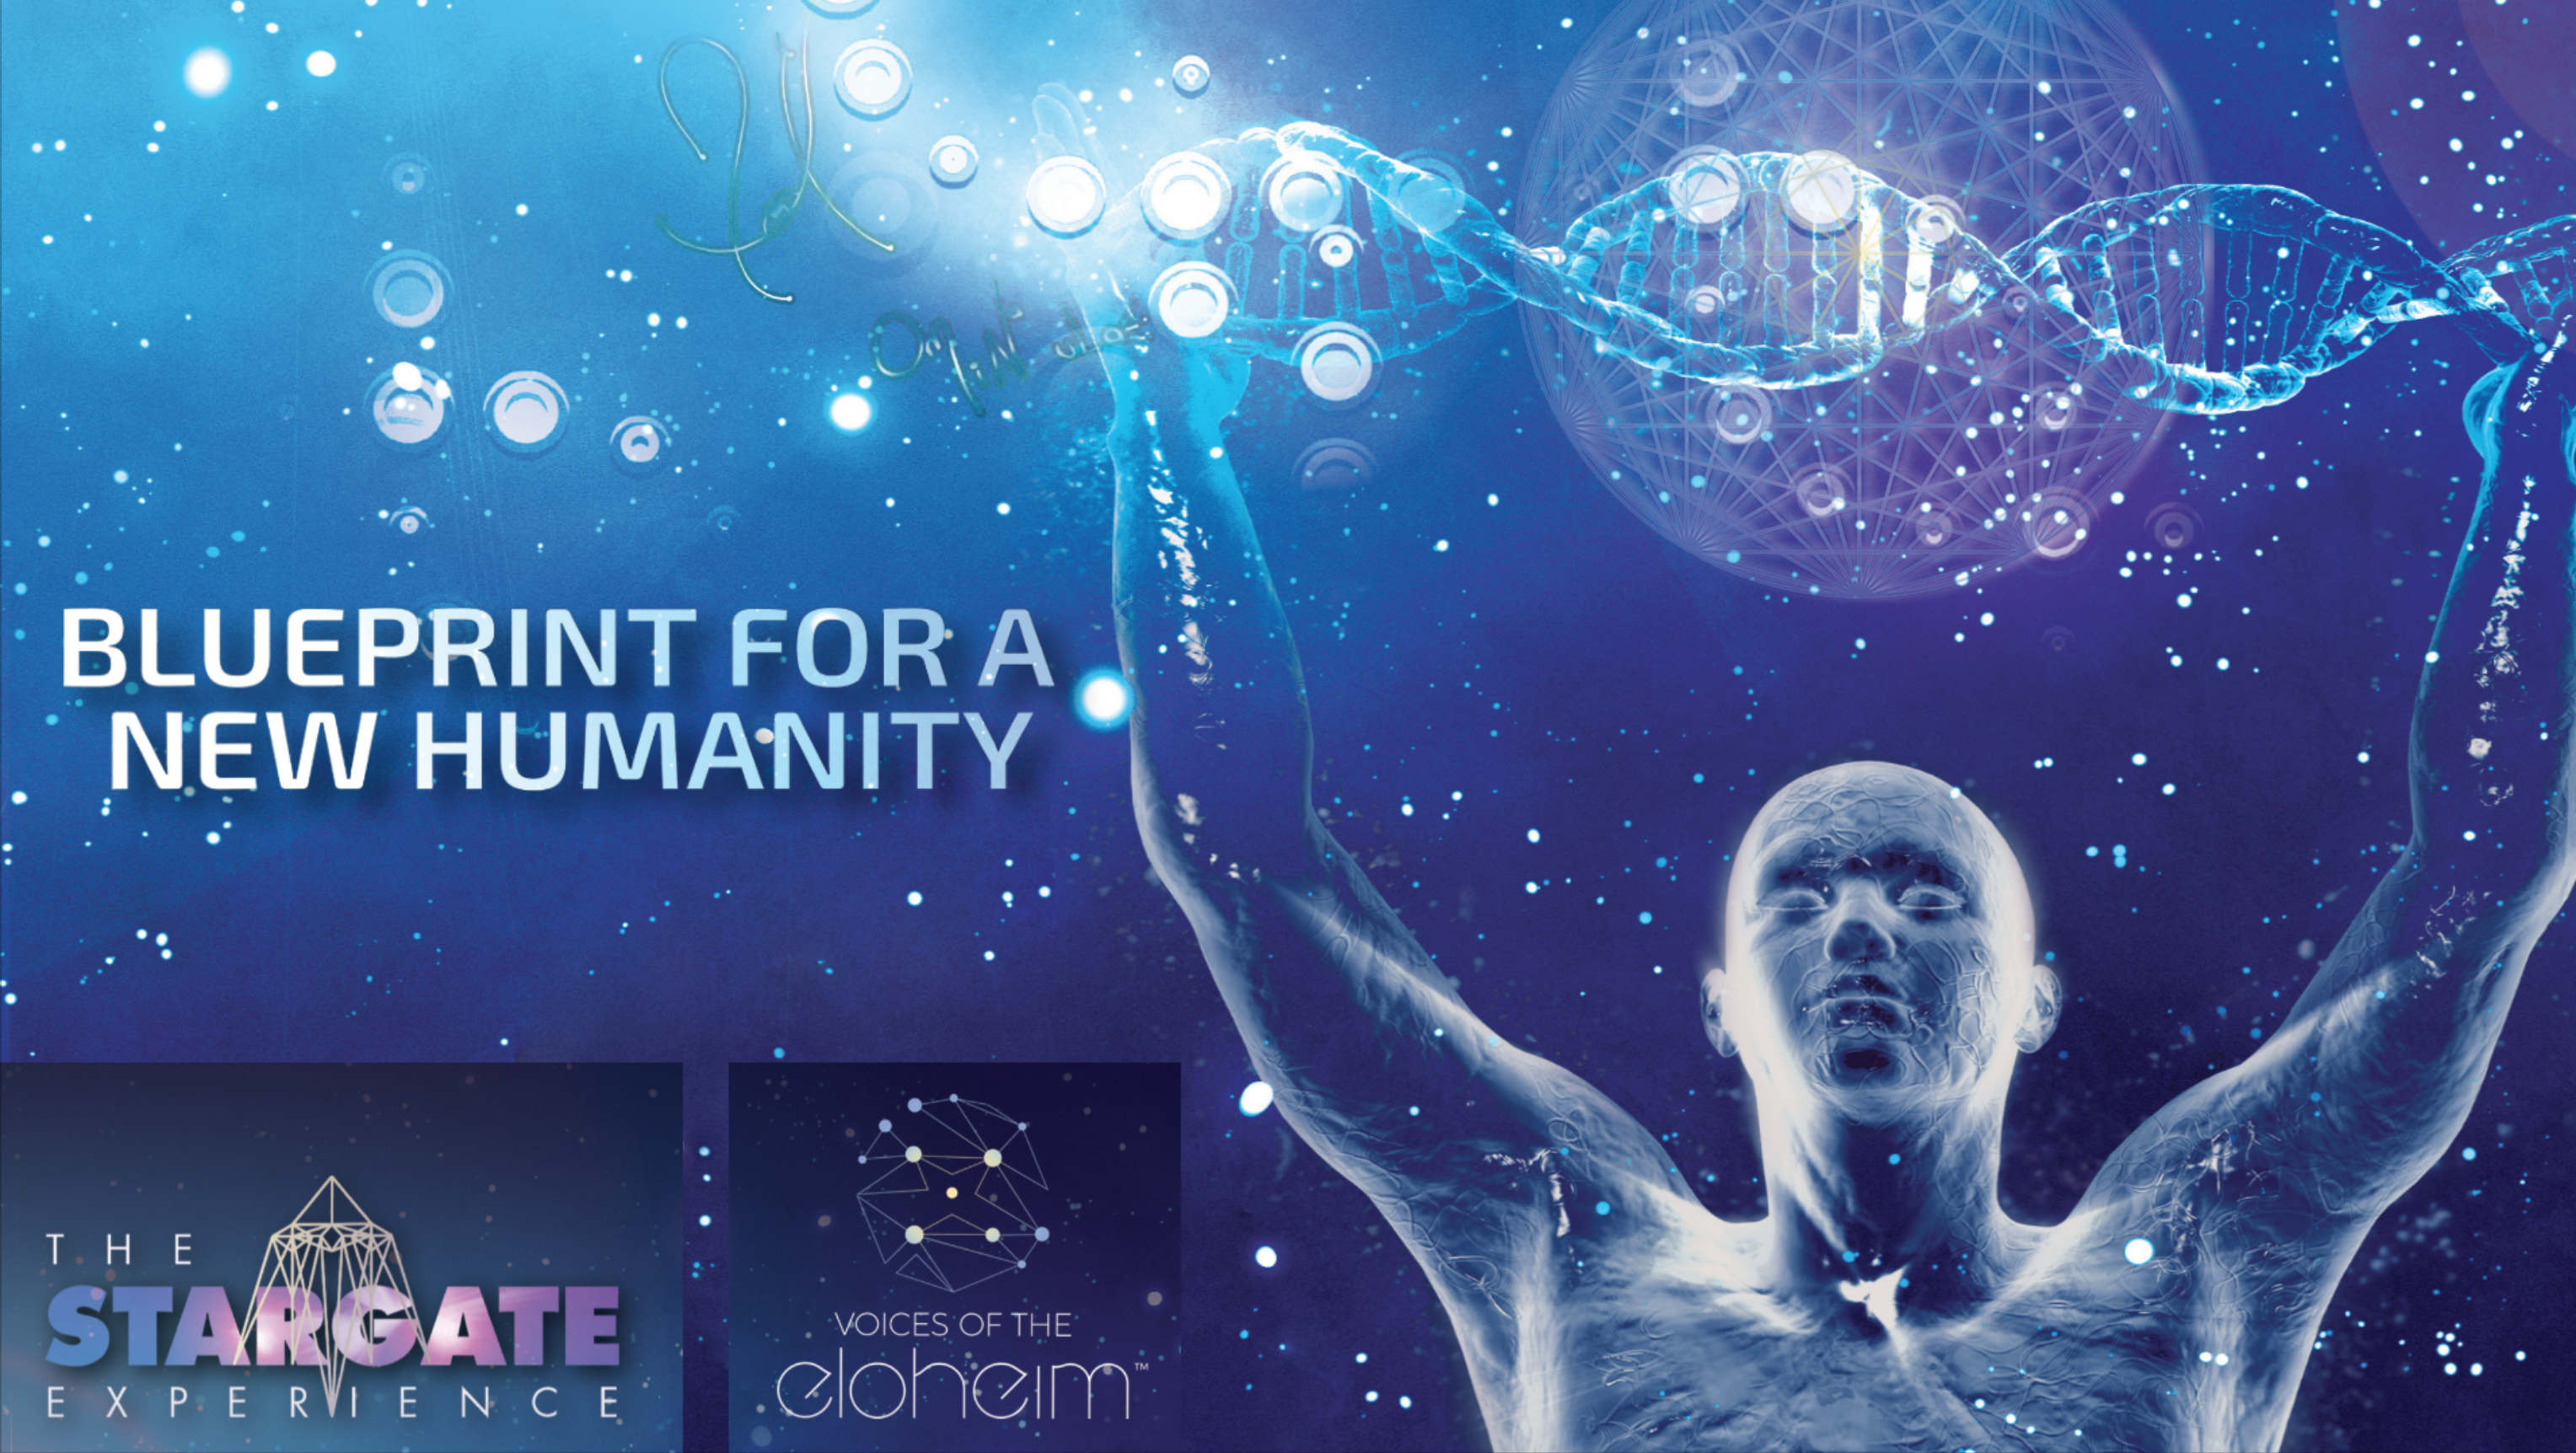 Blueprint for the New Humanity